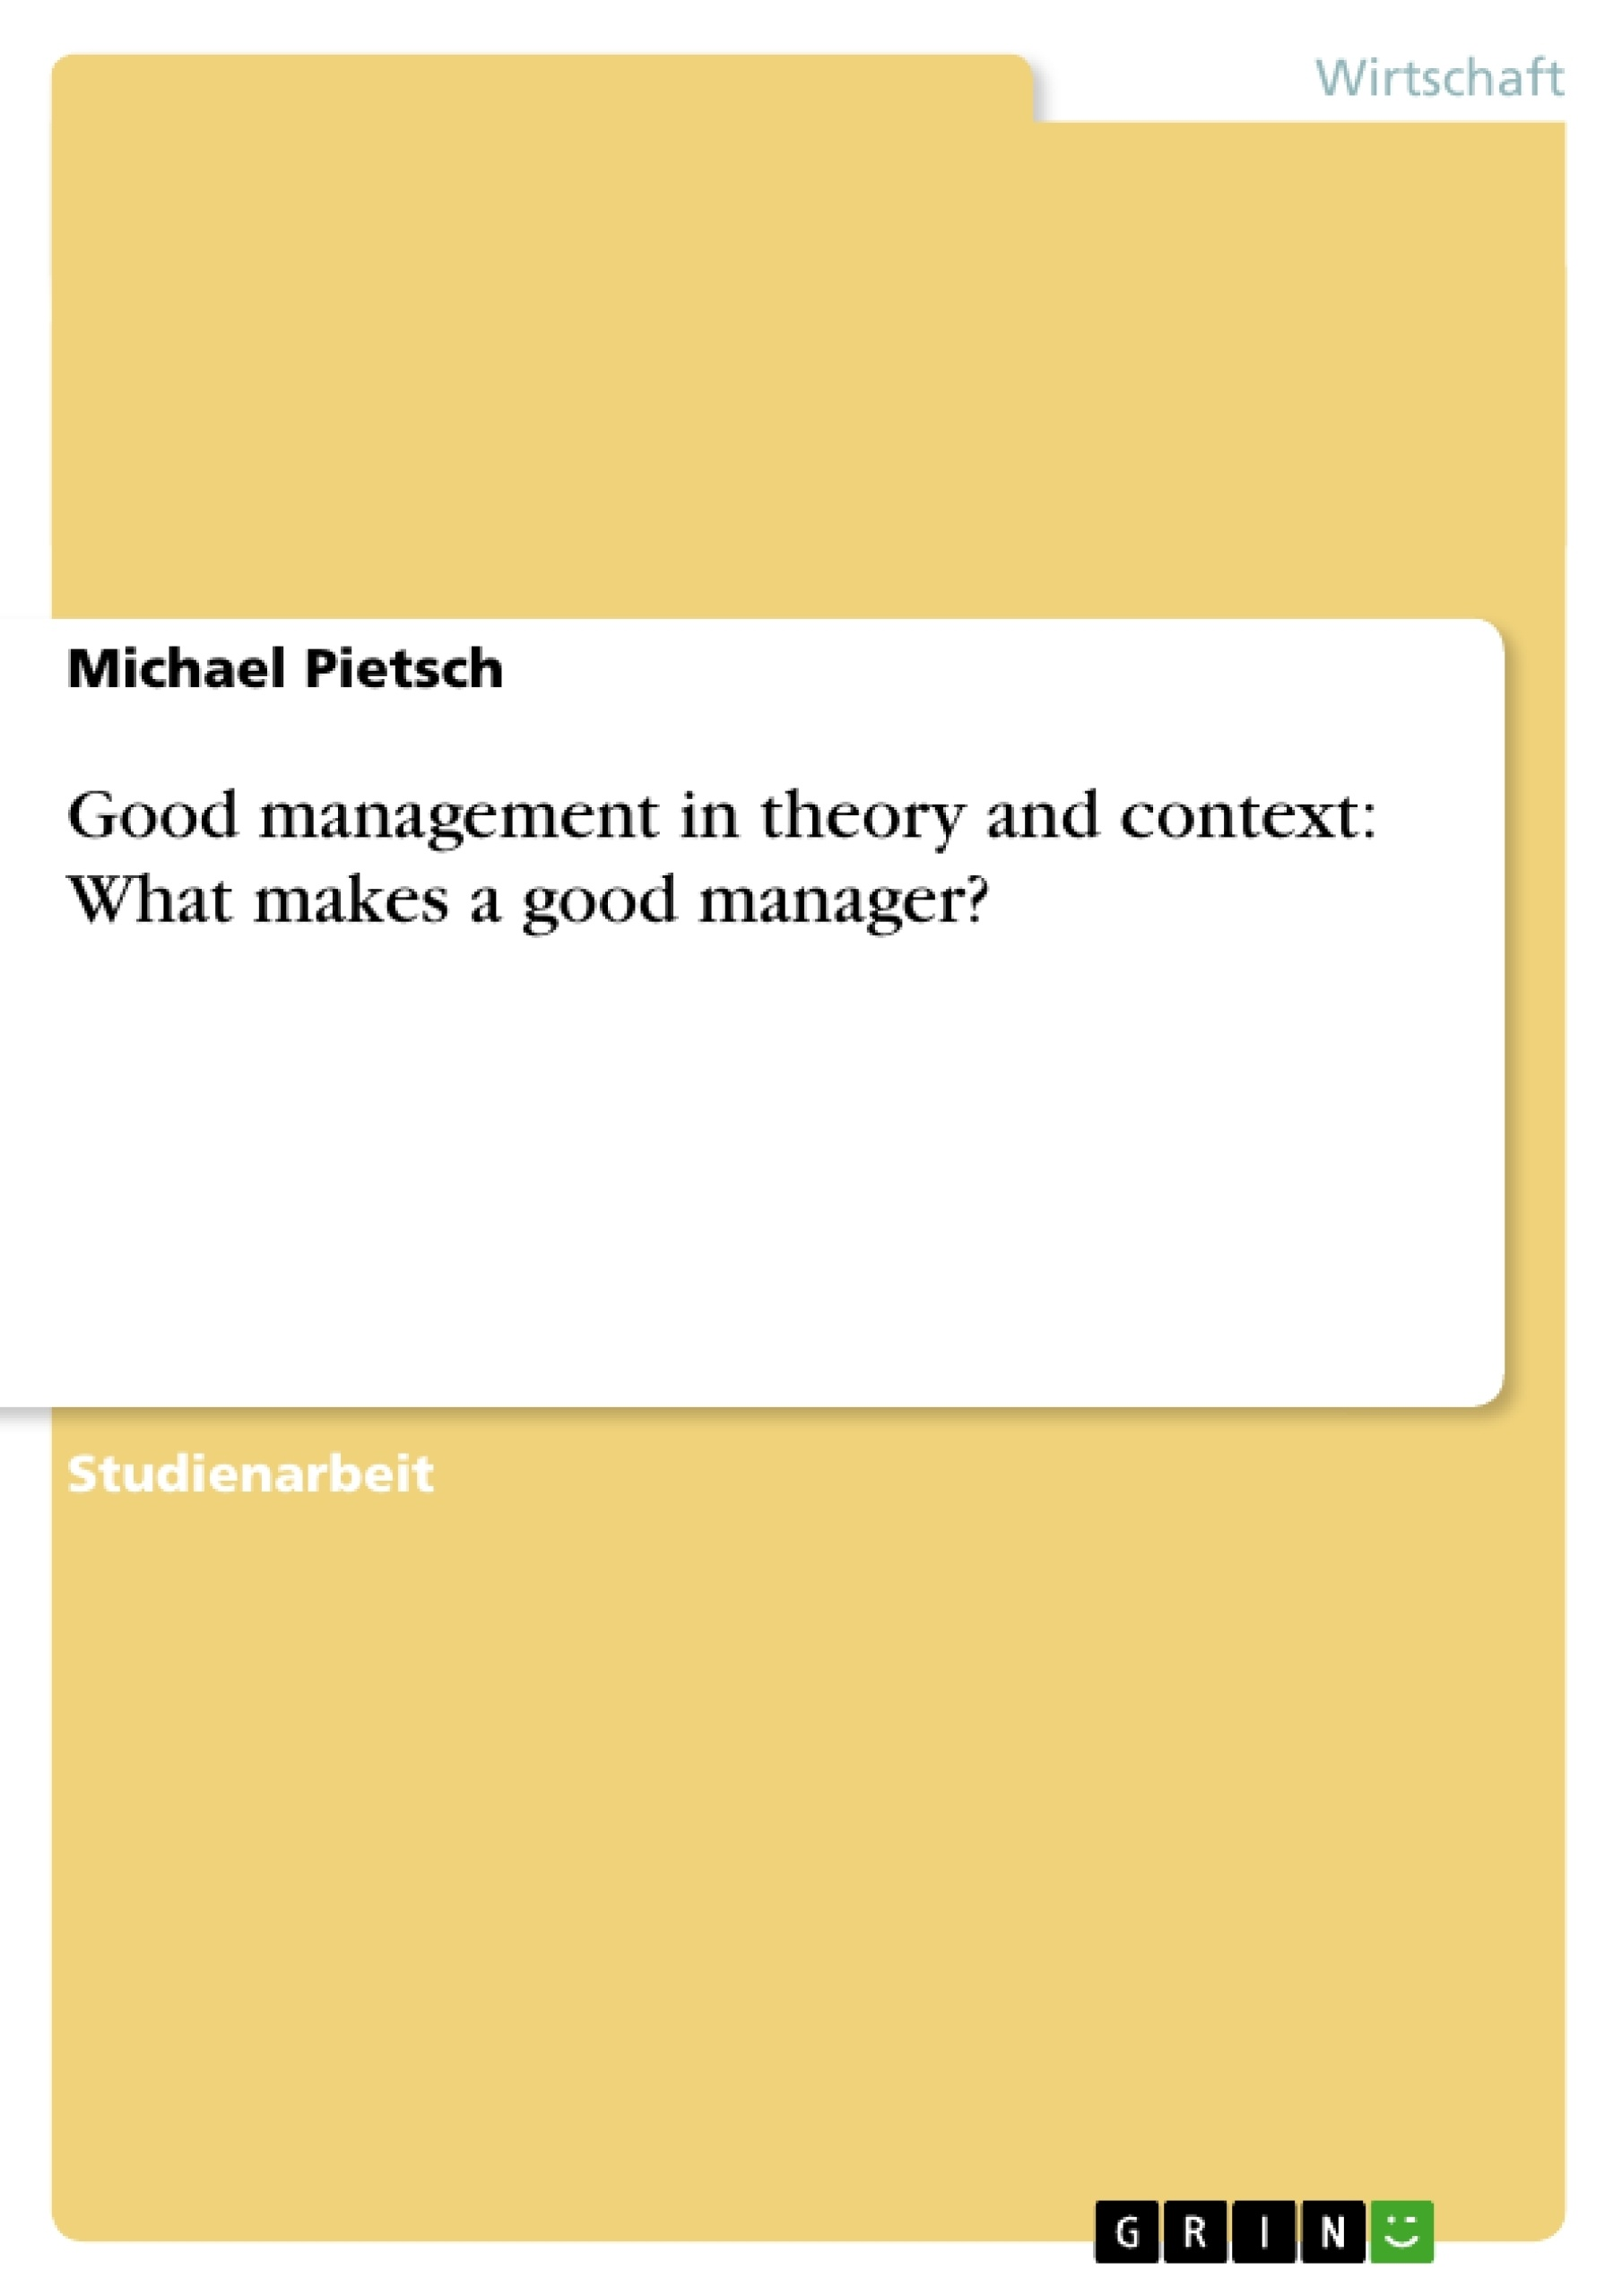 Titel: Good management in theory and context: What makes a good manager?